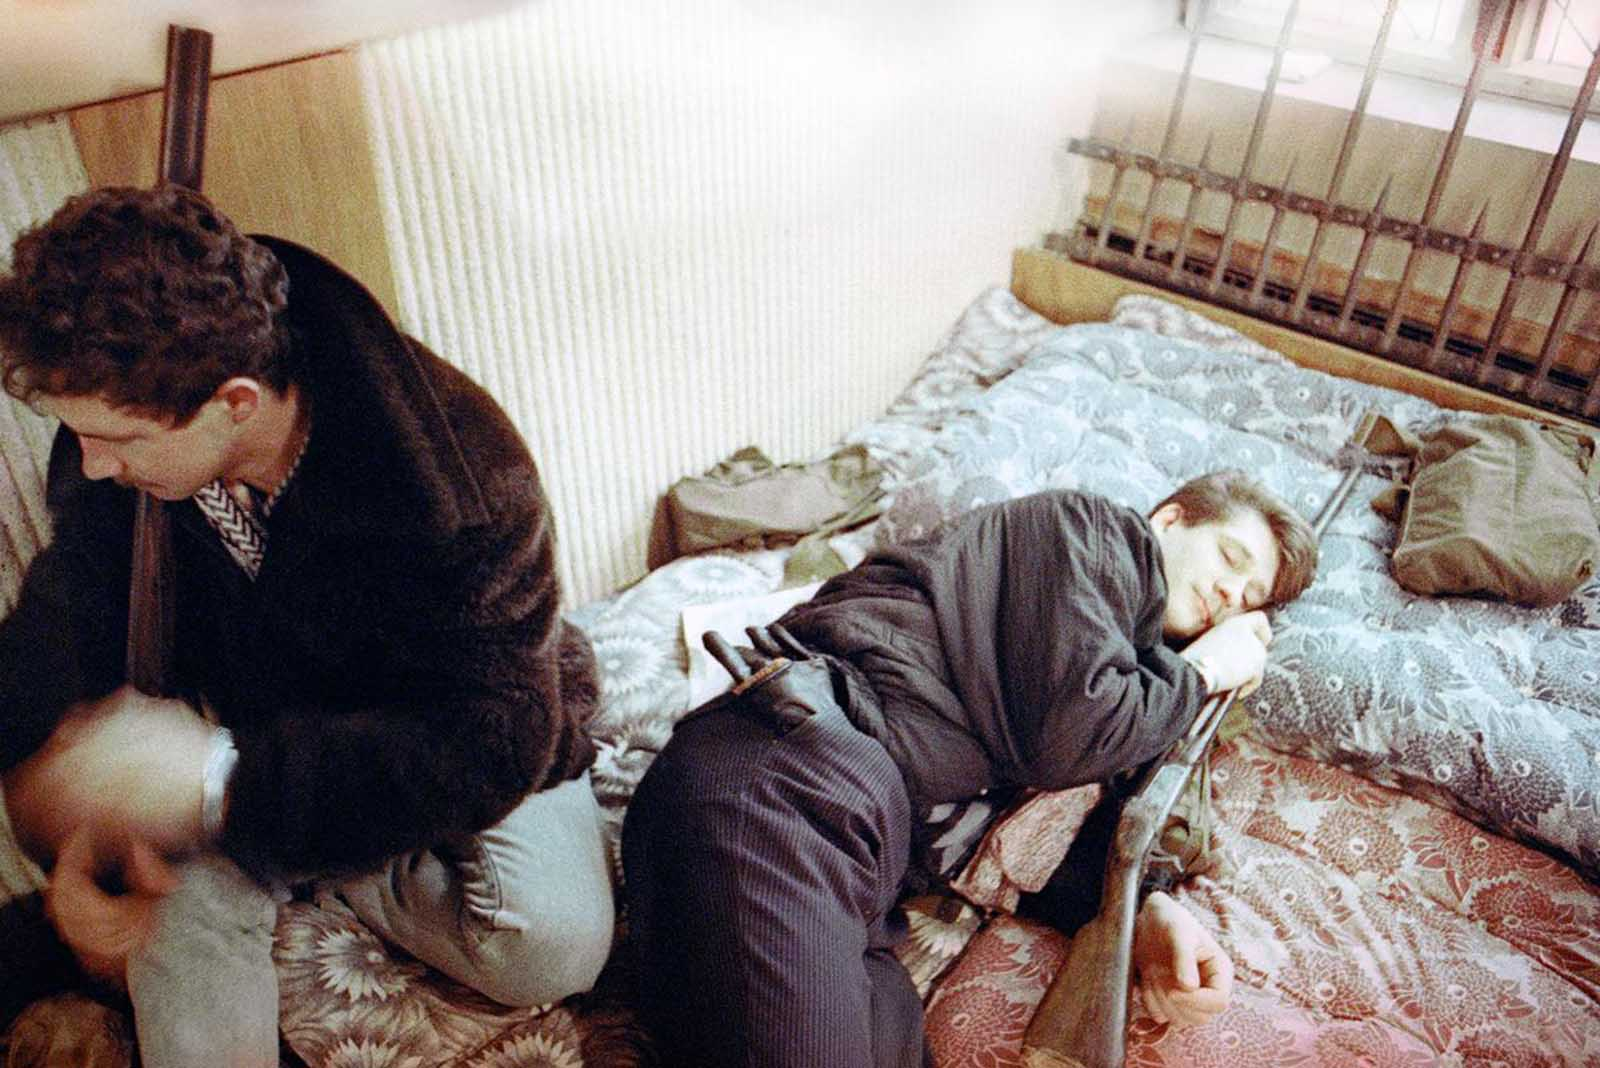 An armed Lithuanian volunteer guard wakes up as his fellow compatriot slept in Vilnius, Lithuania, on January 23, 1991. Hundreds of gunmen held vigil in the heavily fortified Lithuanian parliament while Soviet President Mikhail Gorbachev urged all Baltic republics to prevent further violence.